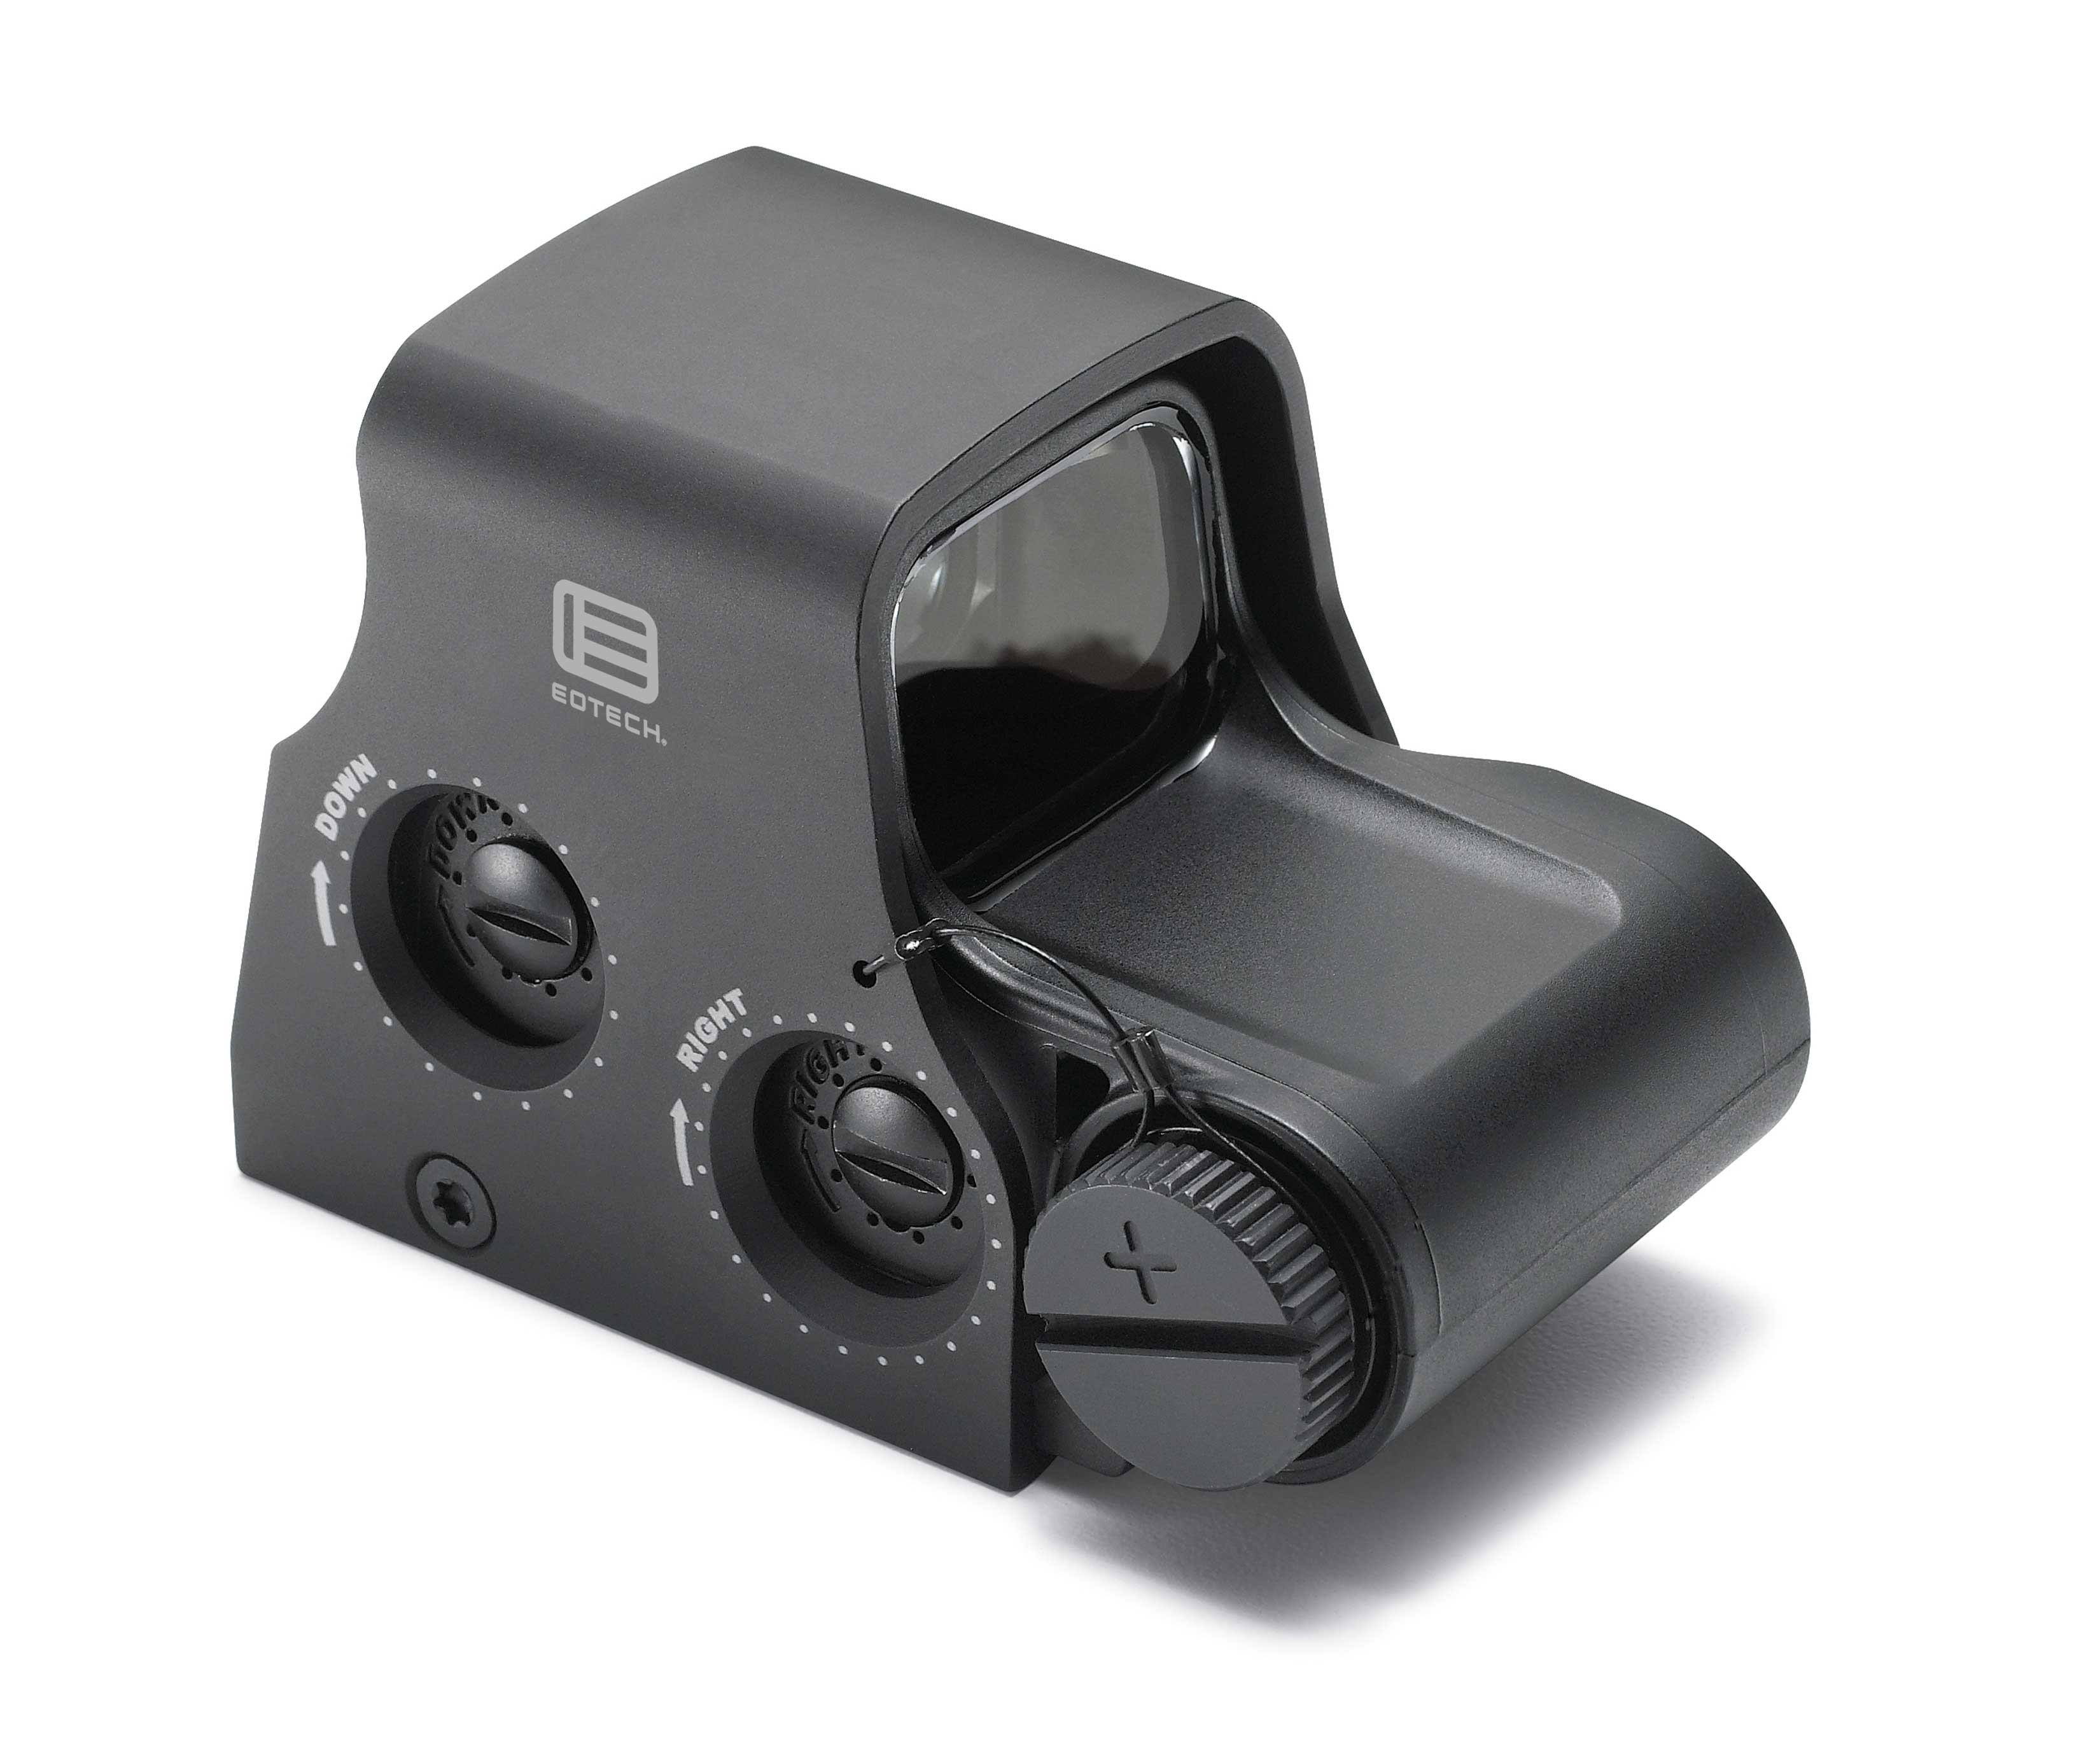 EOTech HWS Model XPS3-2 Holographic Sight - 1x - Illum. 68 MOA Ring w/ 2 1-MOA Dots - 1 MOA Red Dot - Matte